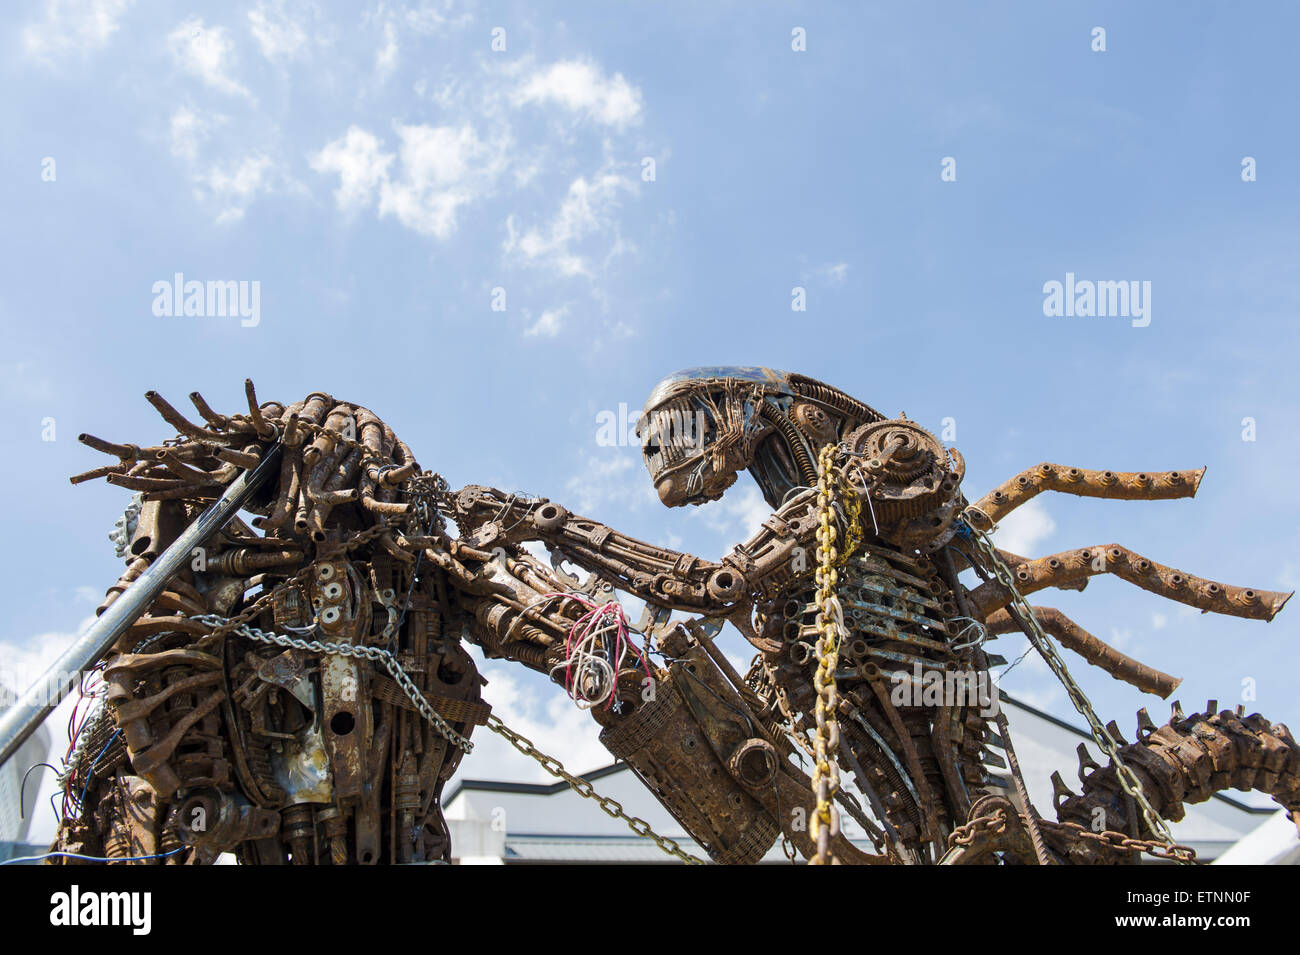 Garden City, New York, USA. 14th June, 2015. The Alien sculpture, by artist Hale Storm of Freeport, is on display - Stock Image